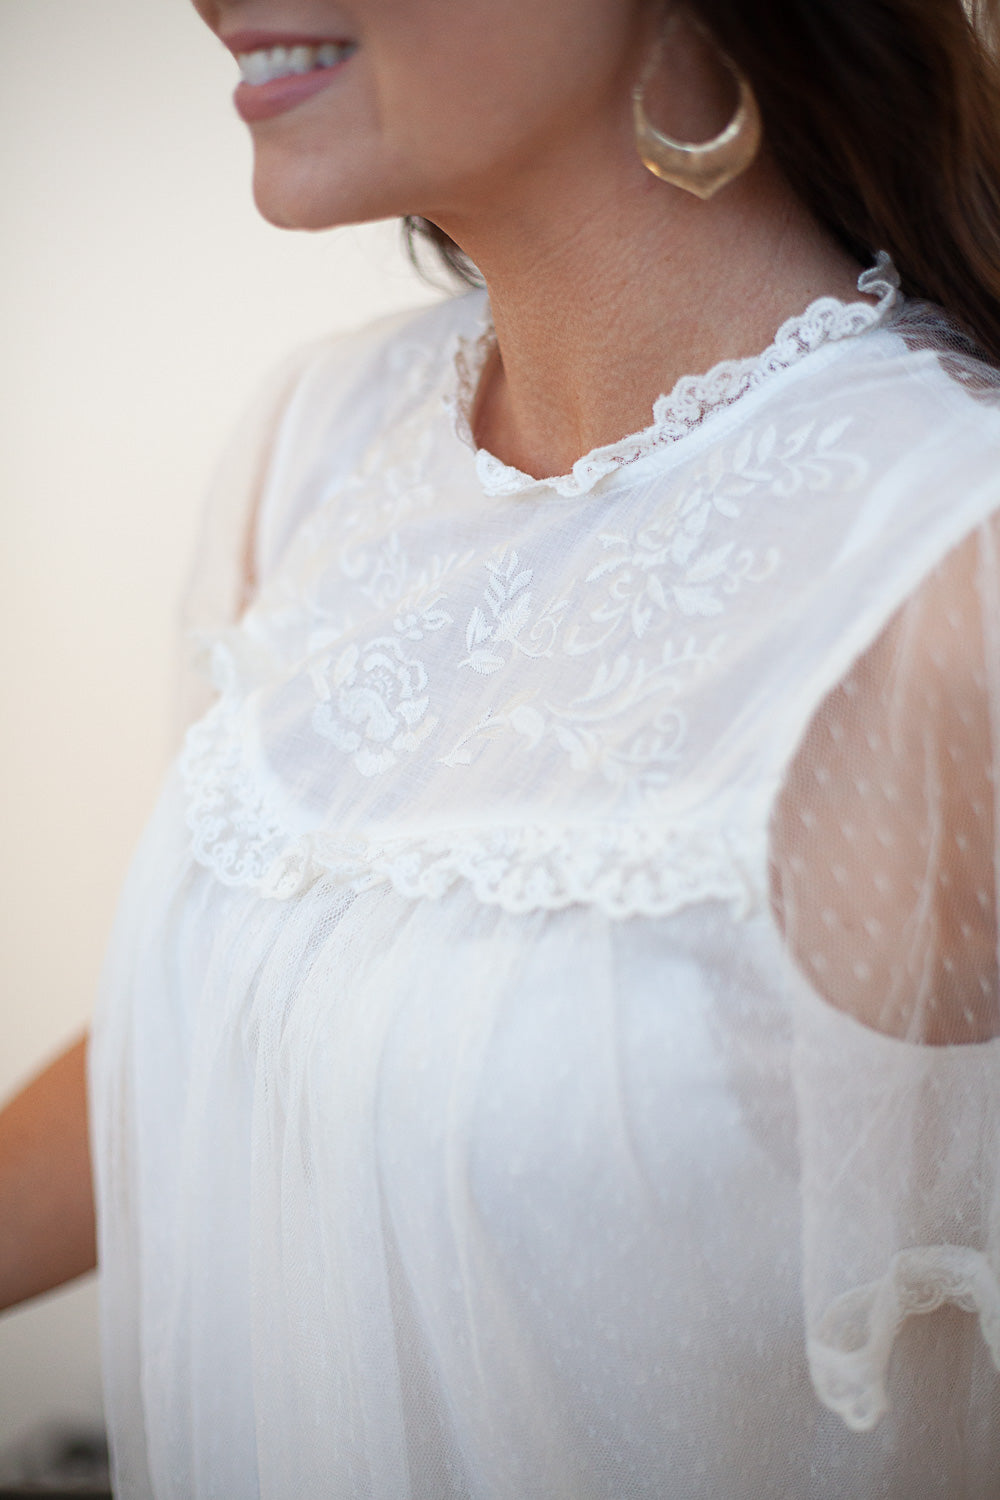 Ethereal Lace Blouse